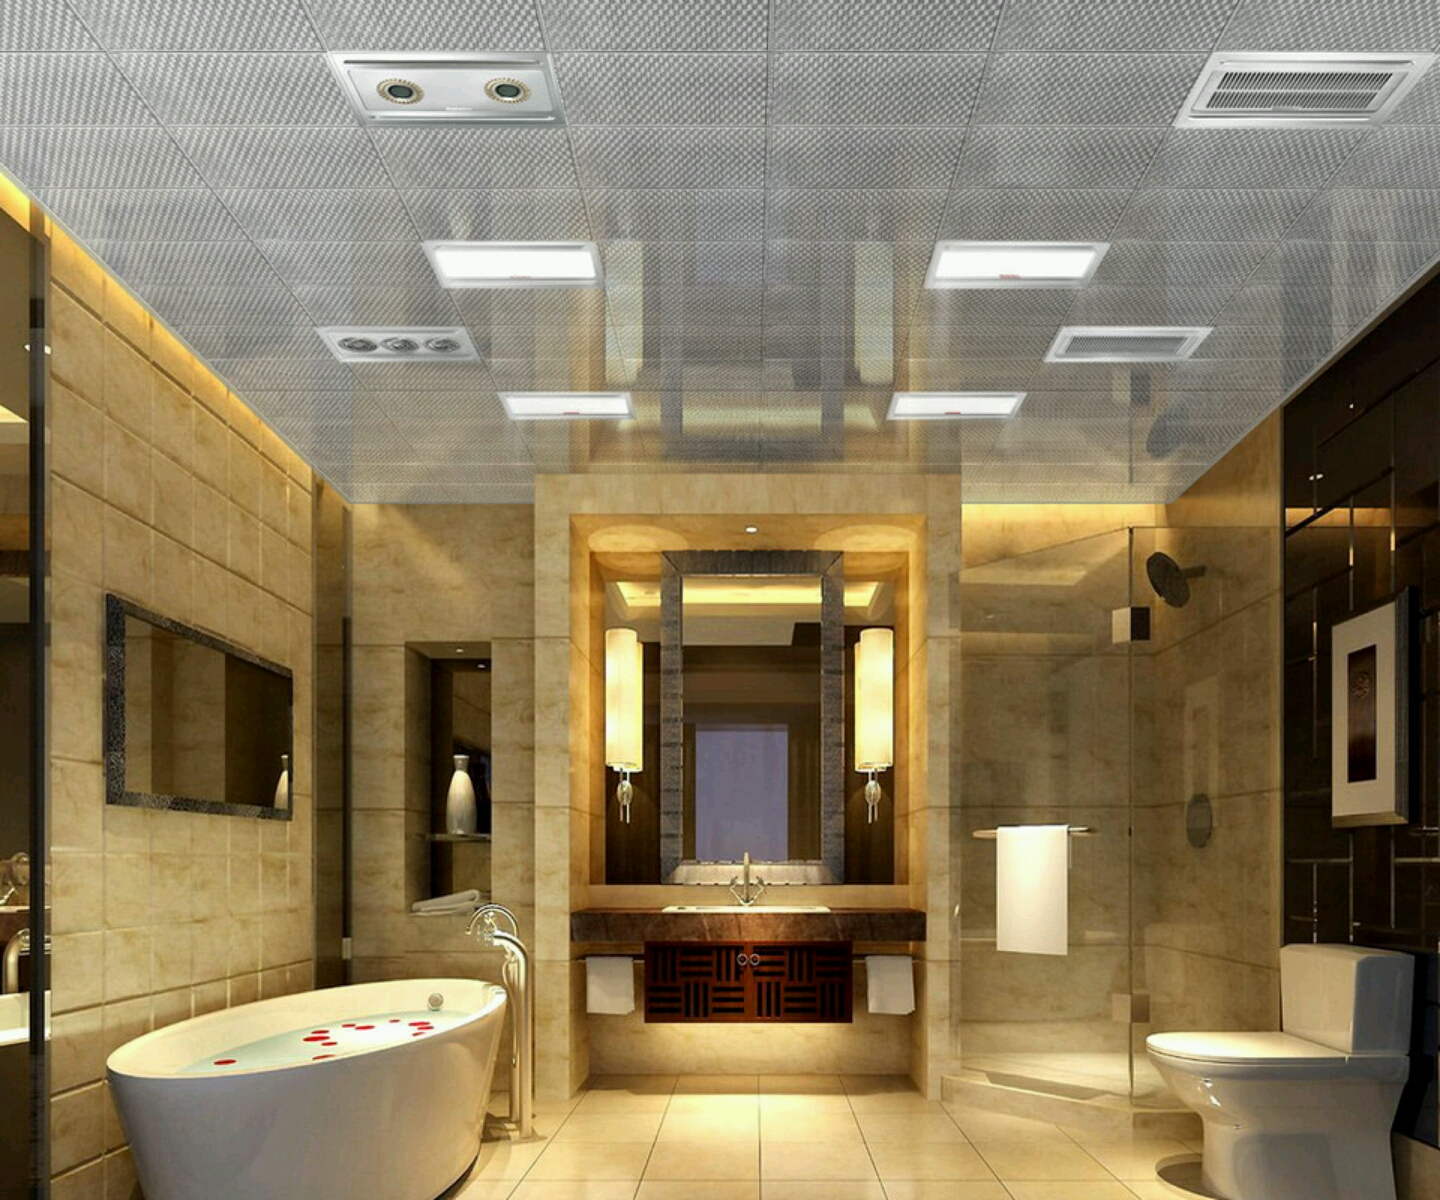 Exclusive Bathroom Design Photos : Beautiful pictures and ideas high end bathroom tile designs